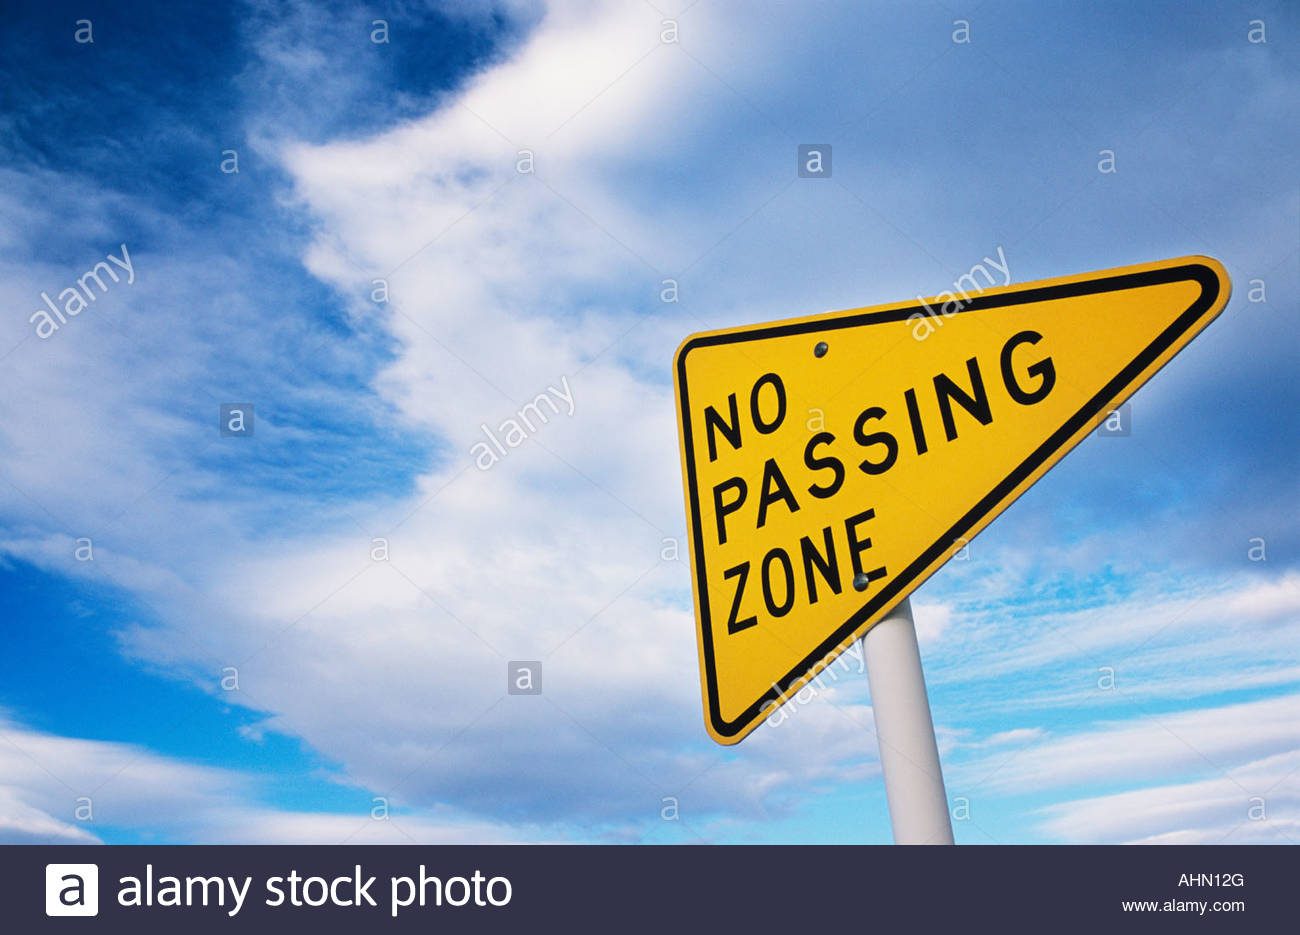 No Passing Zone road sign - Stock Image